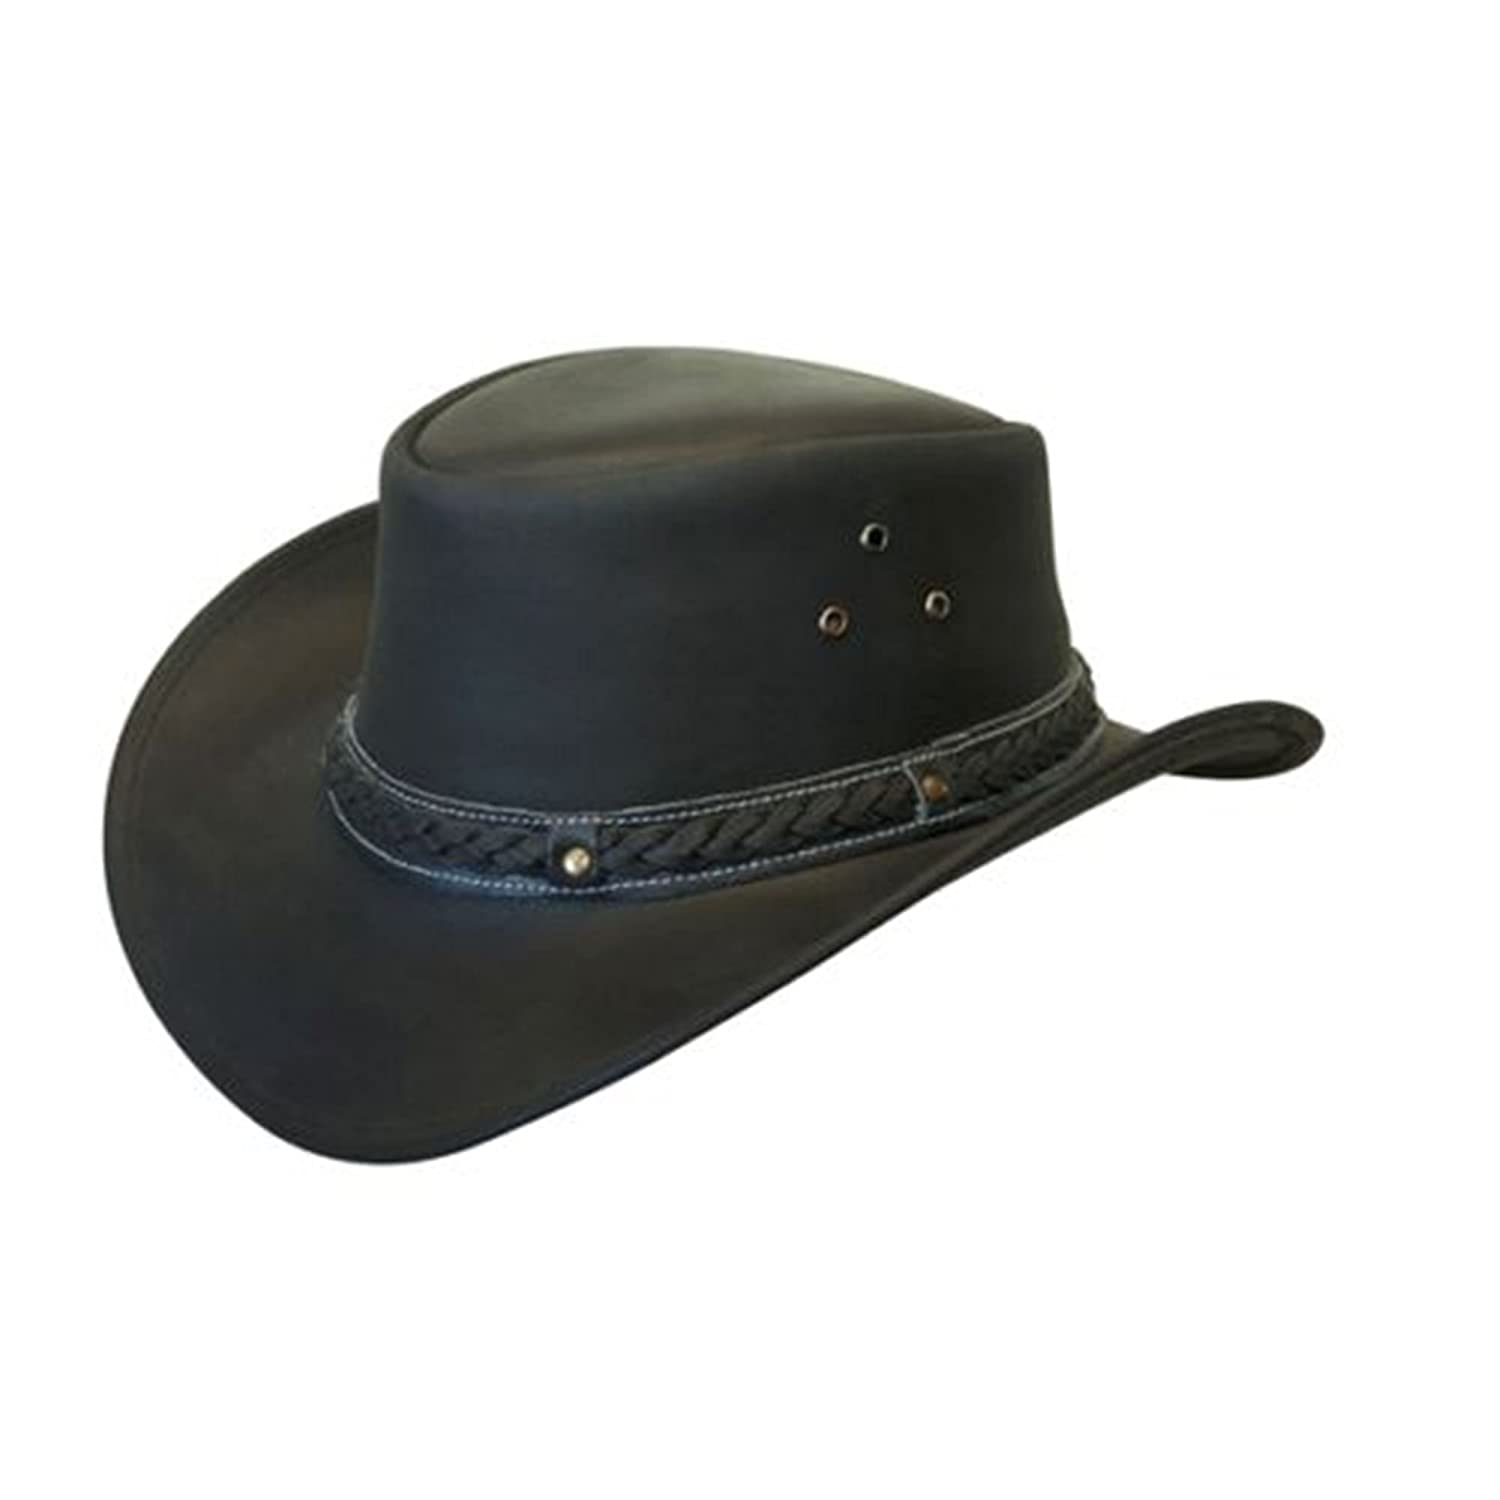 Lesa Collection LEATHER HAT AUSSIE BUSH STYLE Classic Western Outback Black